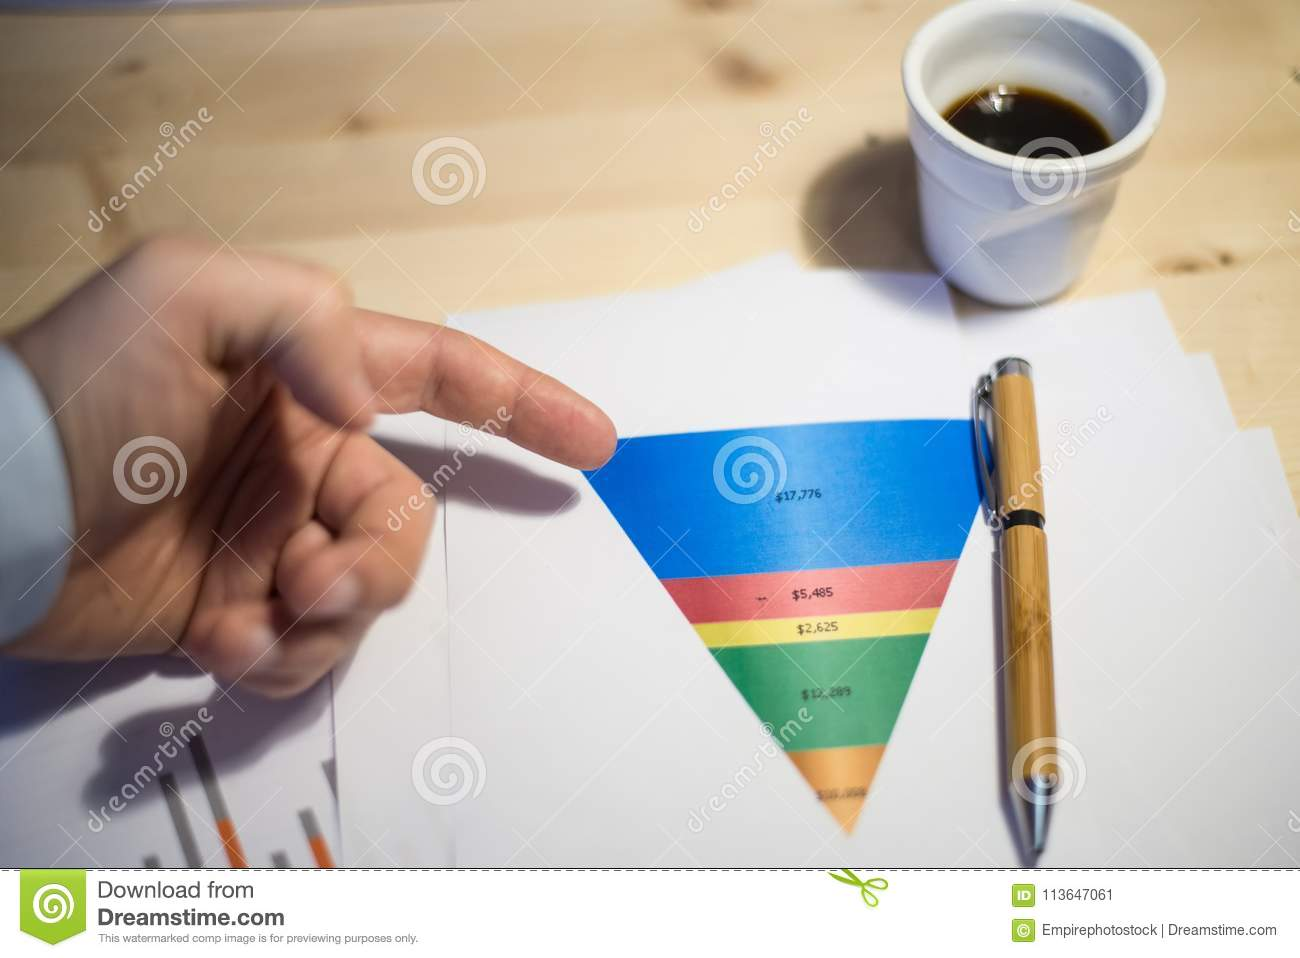 Male hand pointing at a sales funnel printed on a white sheet of paper during a business meeting